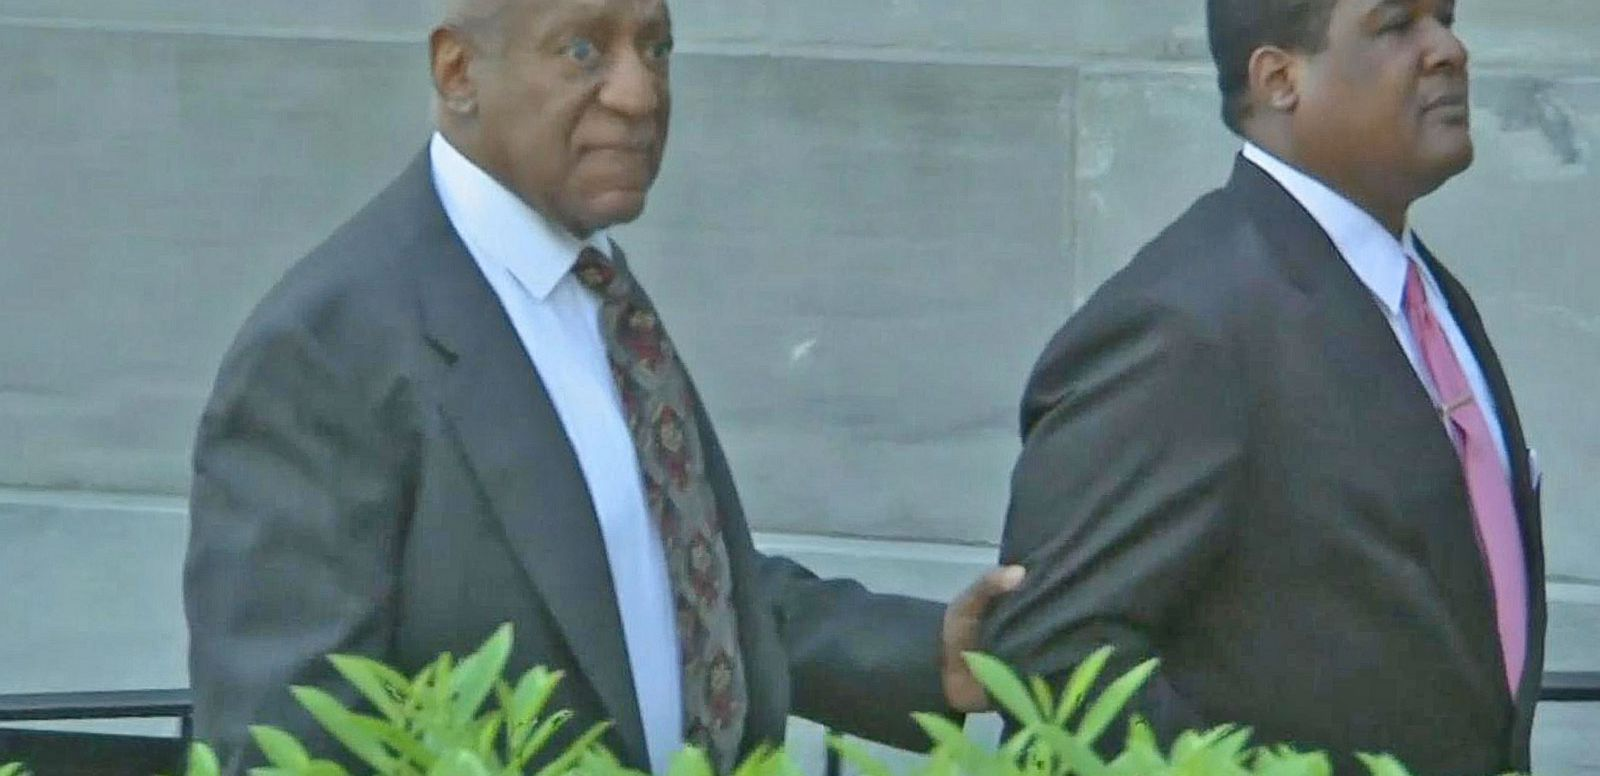 VIDEO: Bill Cosby Appears in Court for Preliminary Hearing